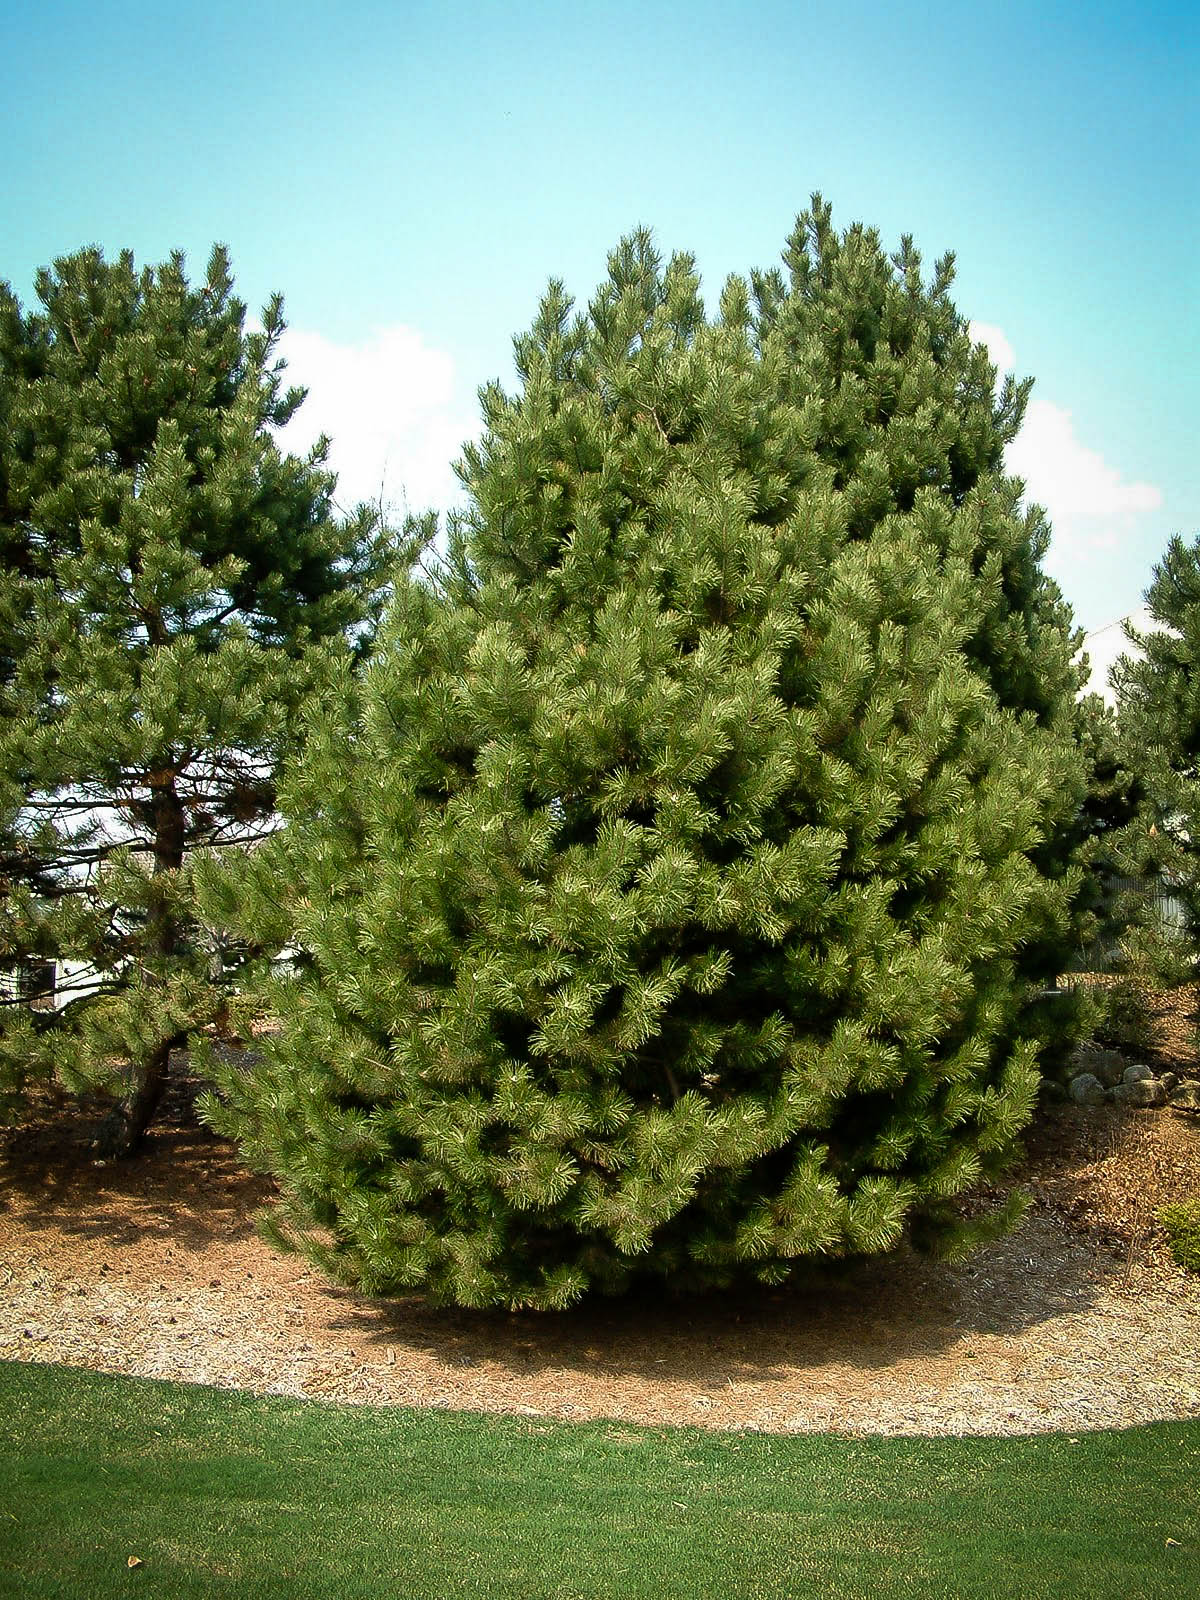 Trees Of Santa Cruz County Nyssa Sylvatica: Austrian Black Pine For Sale